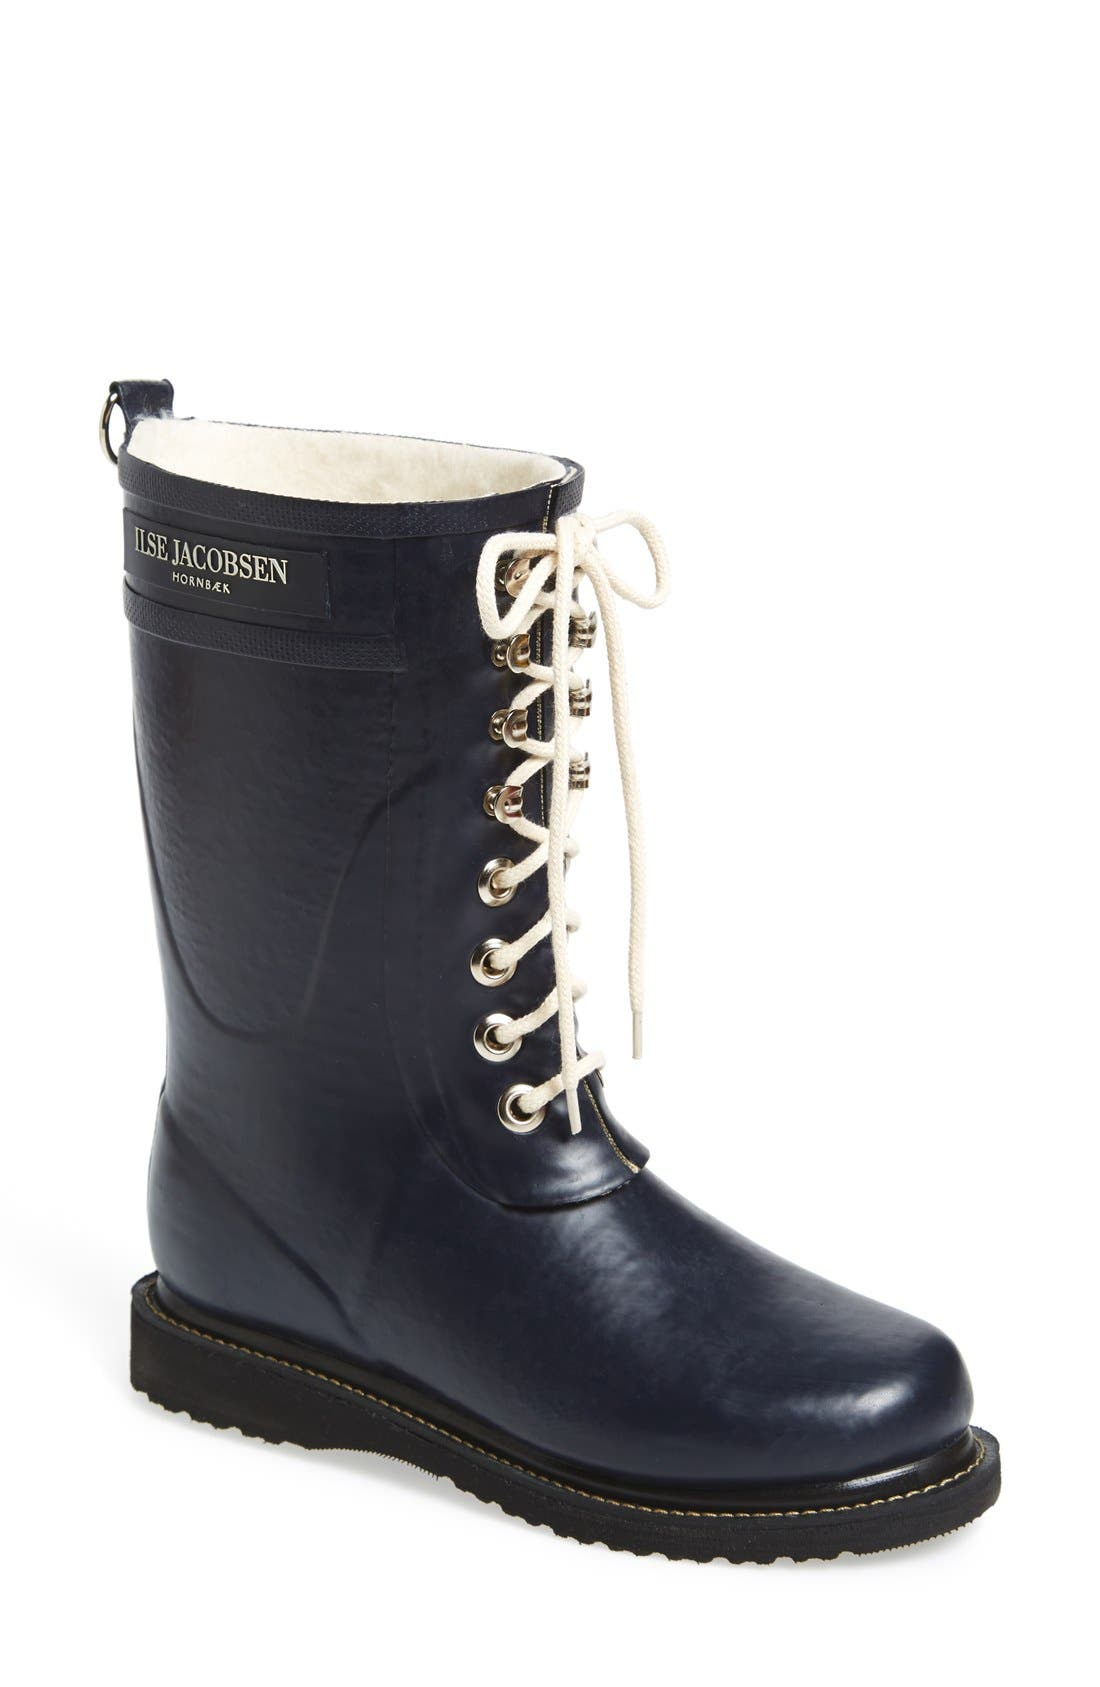 Ilse Jacobsen Rubber Waterproof Boot